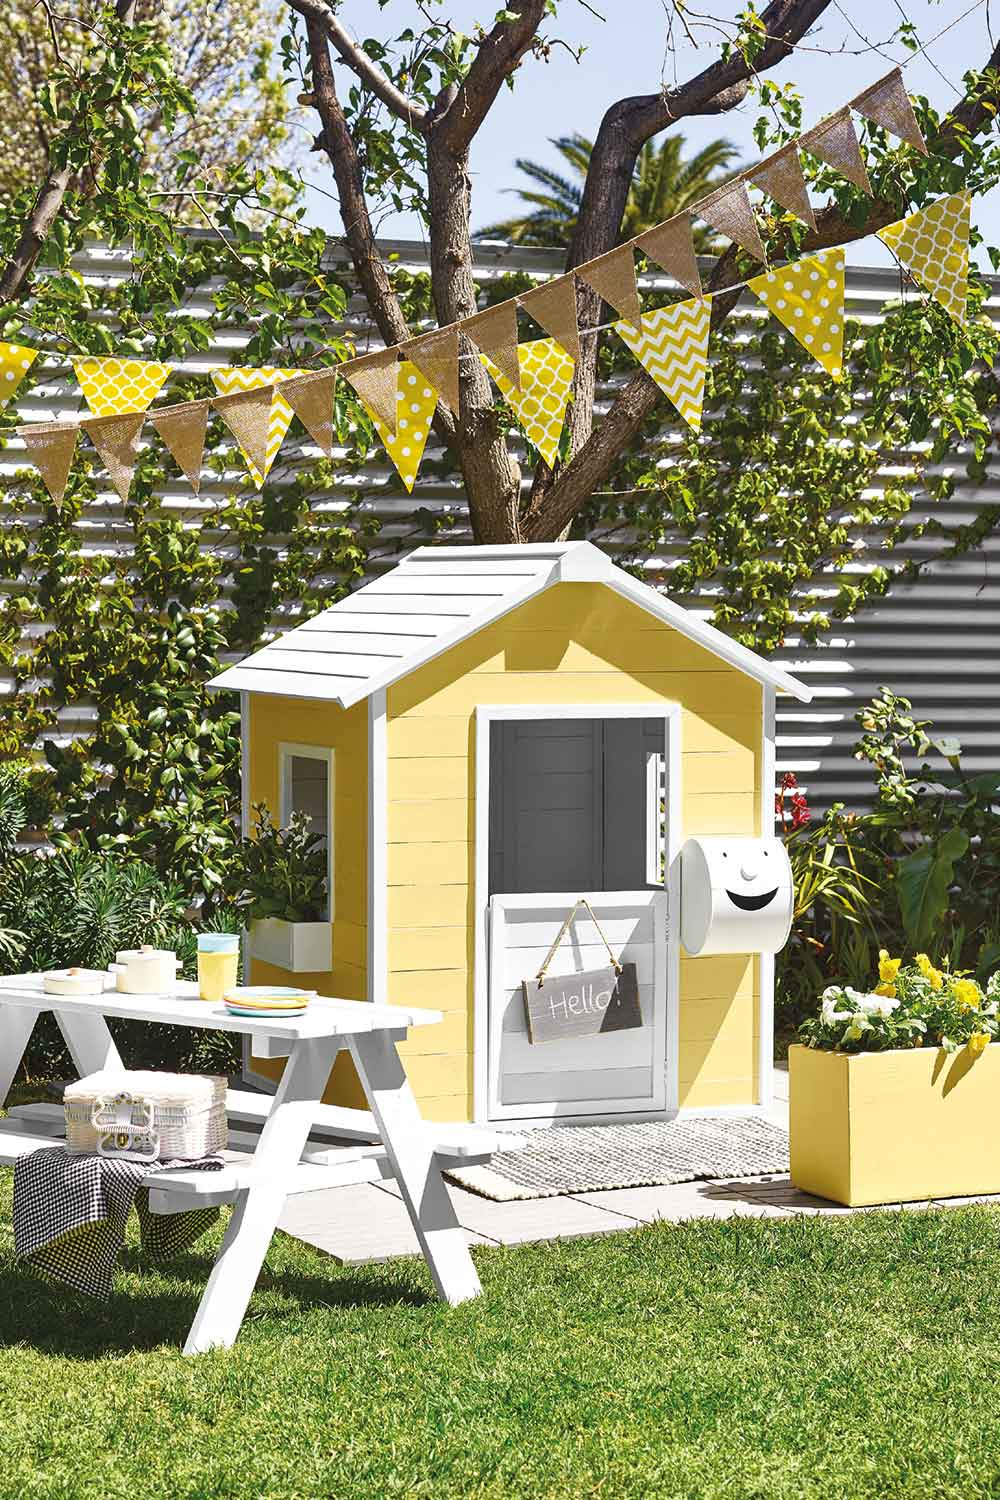 Give Your Kids Cubby House A Fabulous Facelift For Summer Your Mini Me Home Will Be The Hottest House On Your Street Home Beautiful Magazine Australia